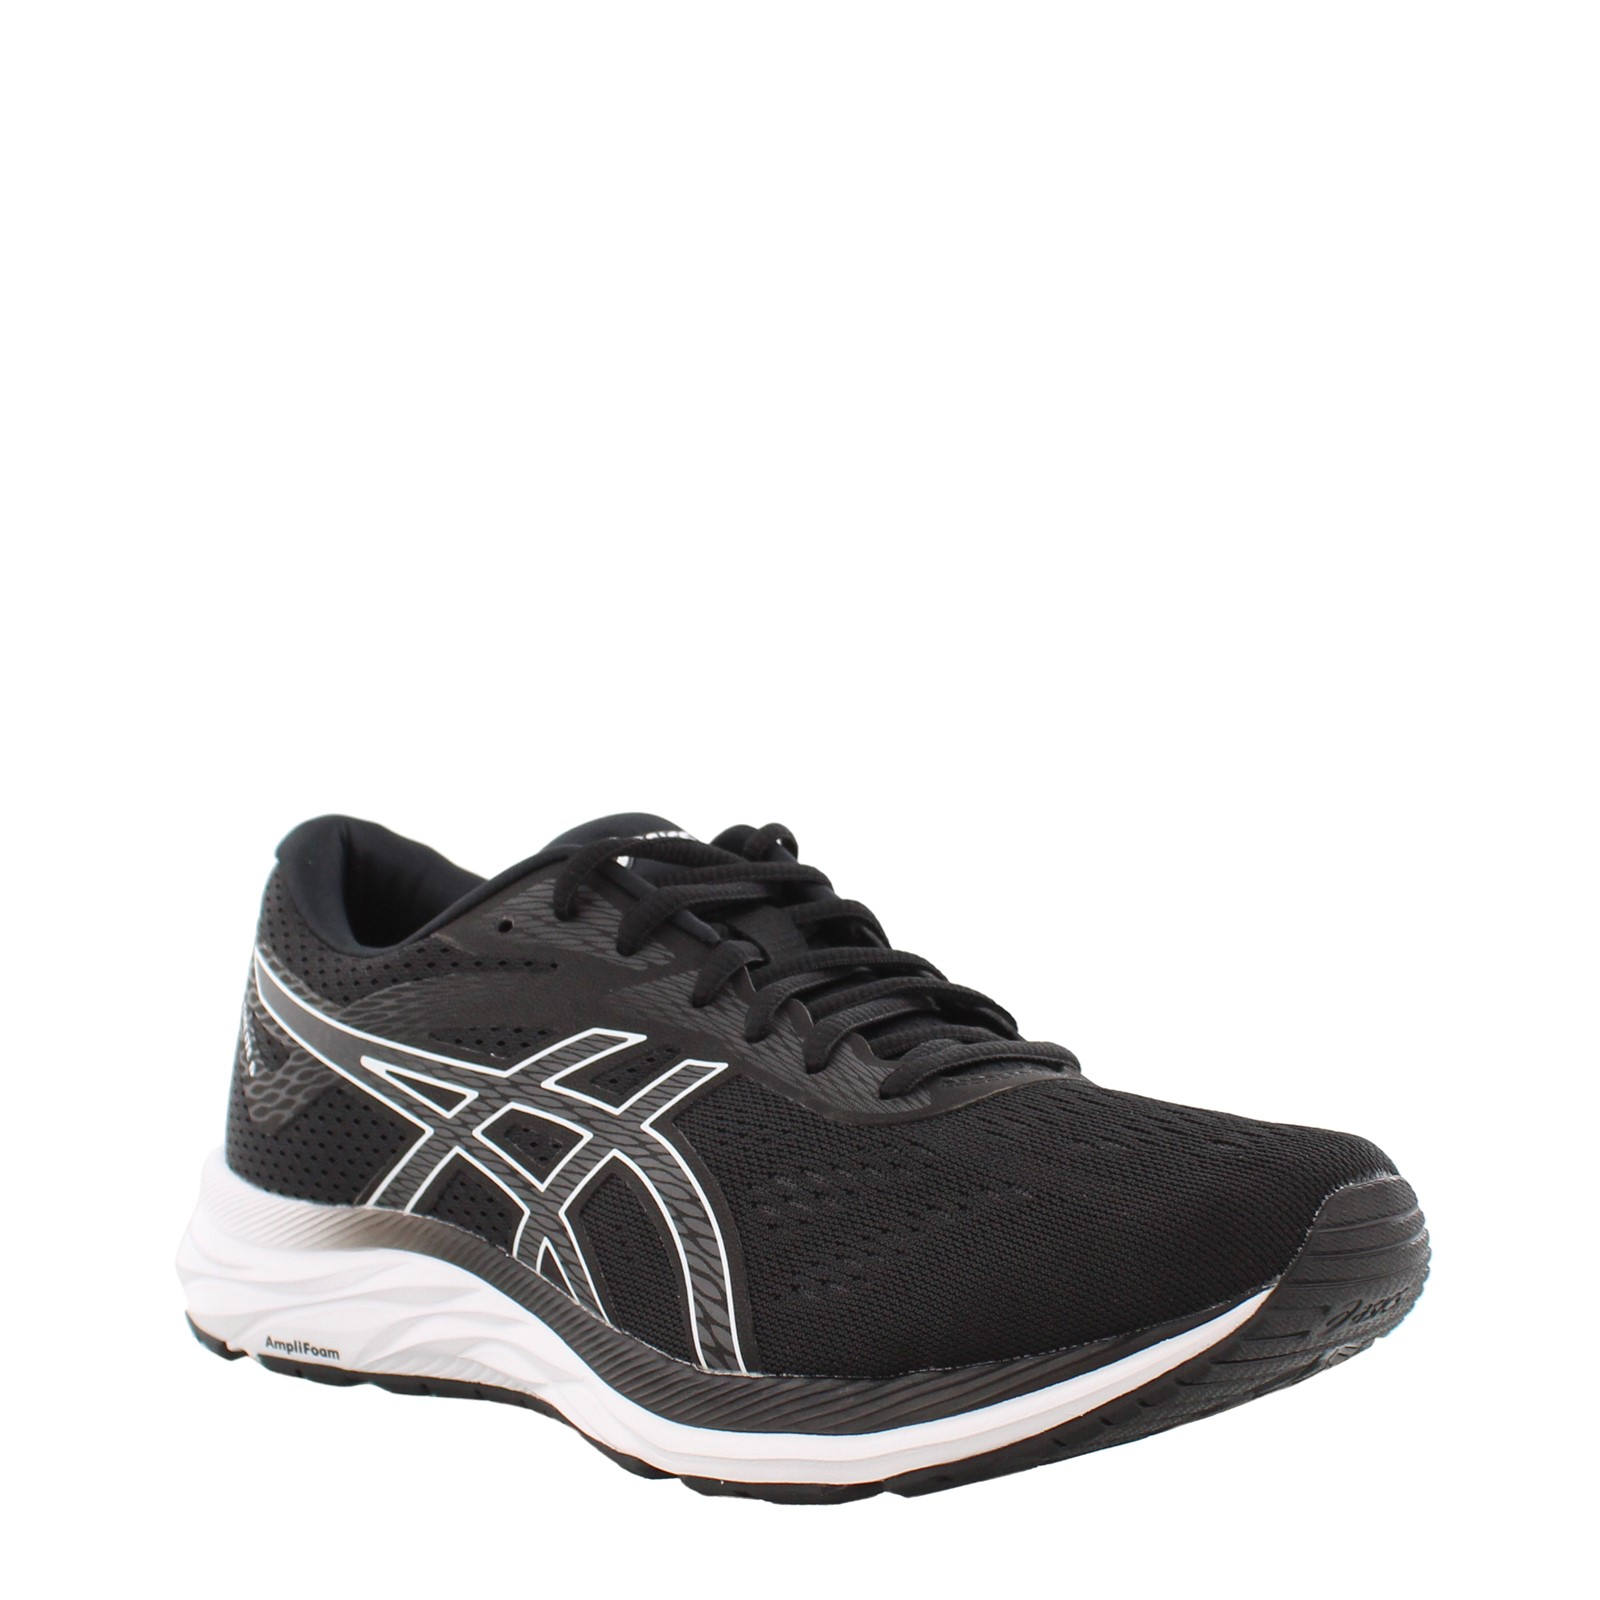 6c04eaff79add Home; Men's Asics, Gel Excite 6 Running Sneaker - Wide Width. Previous